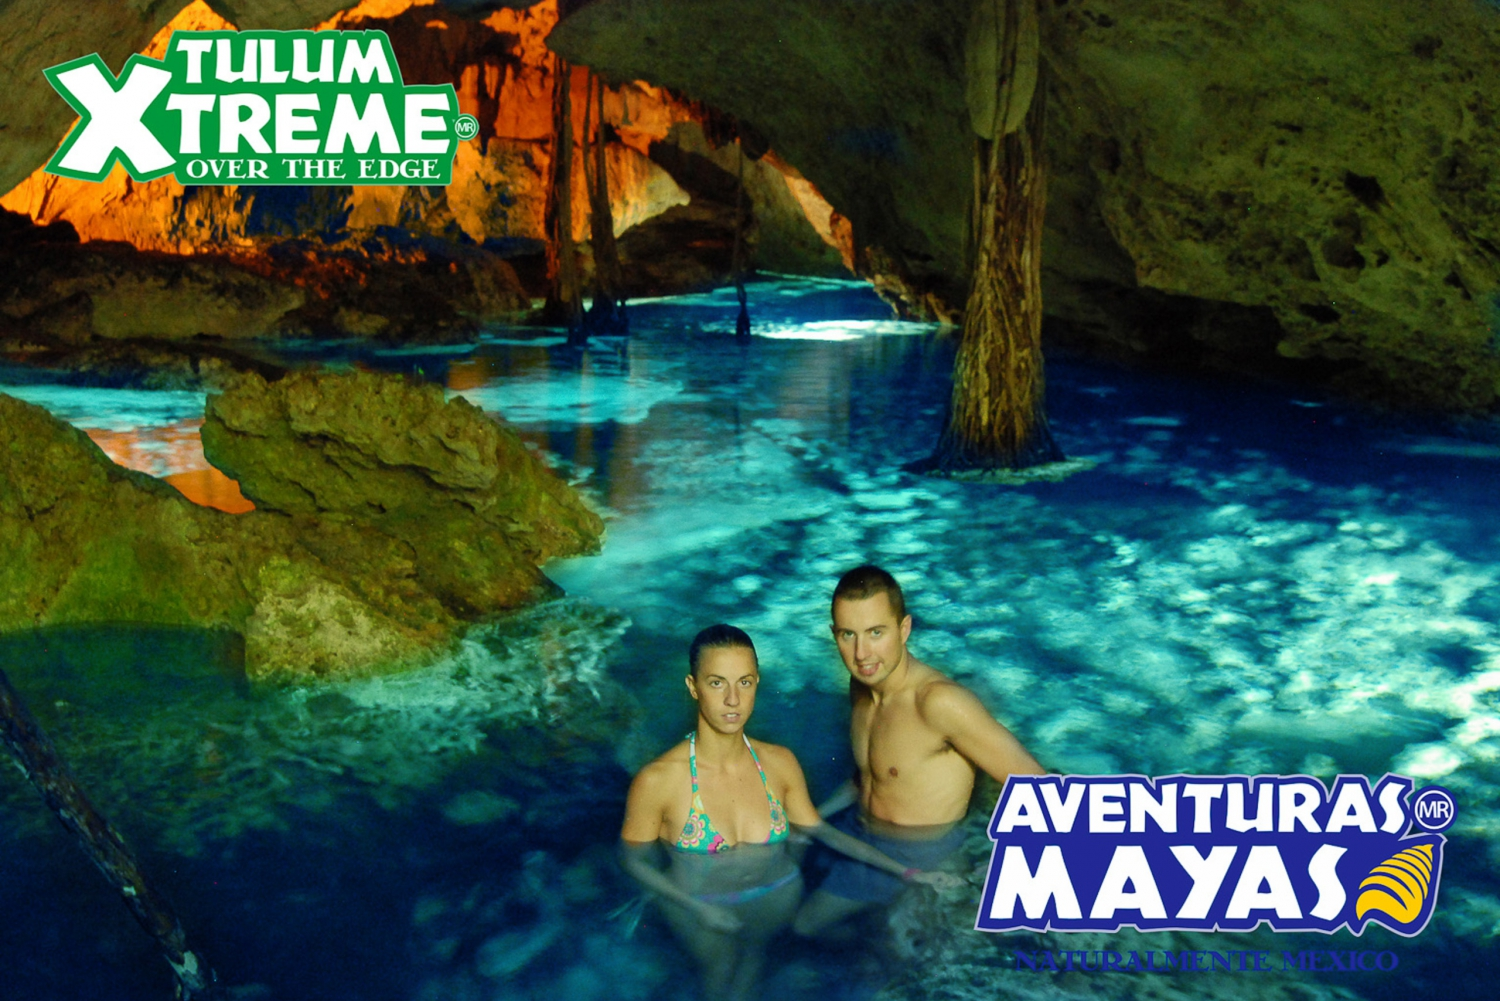 Tulum Xtreme - Culture and adventure tour in Riviera Maya